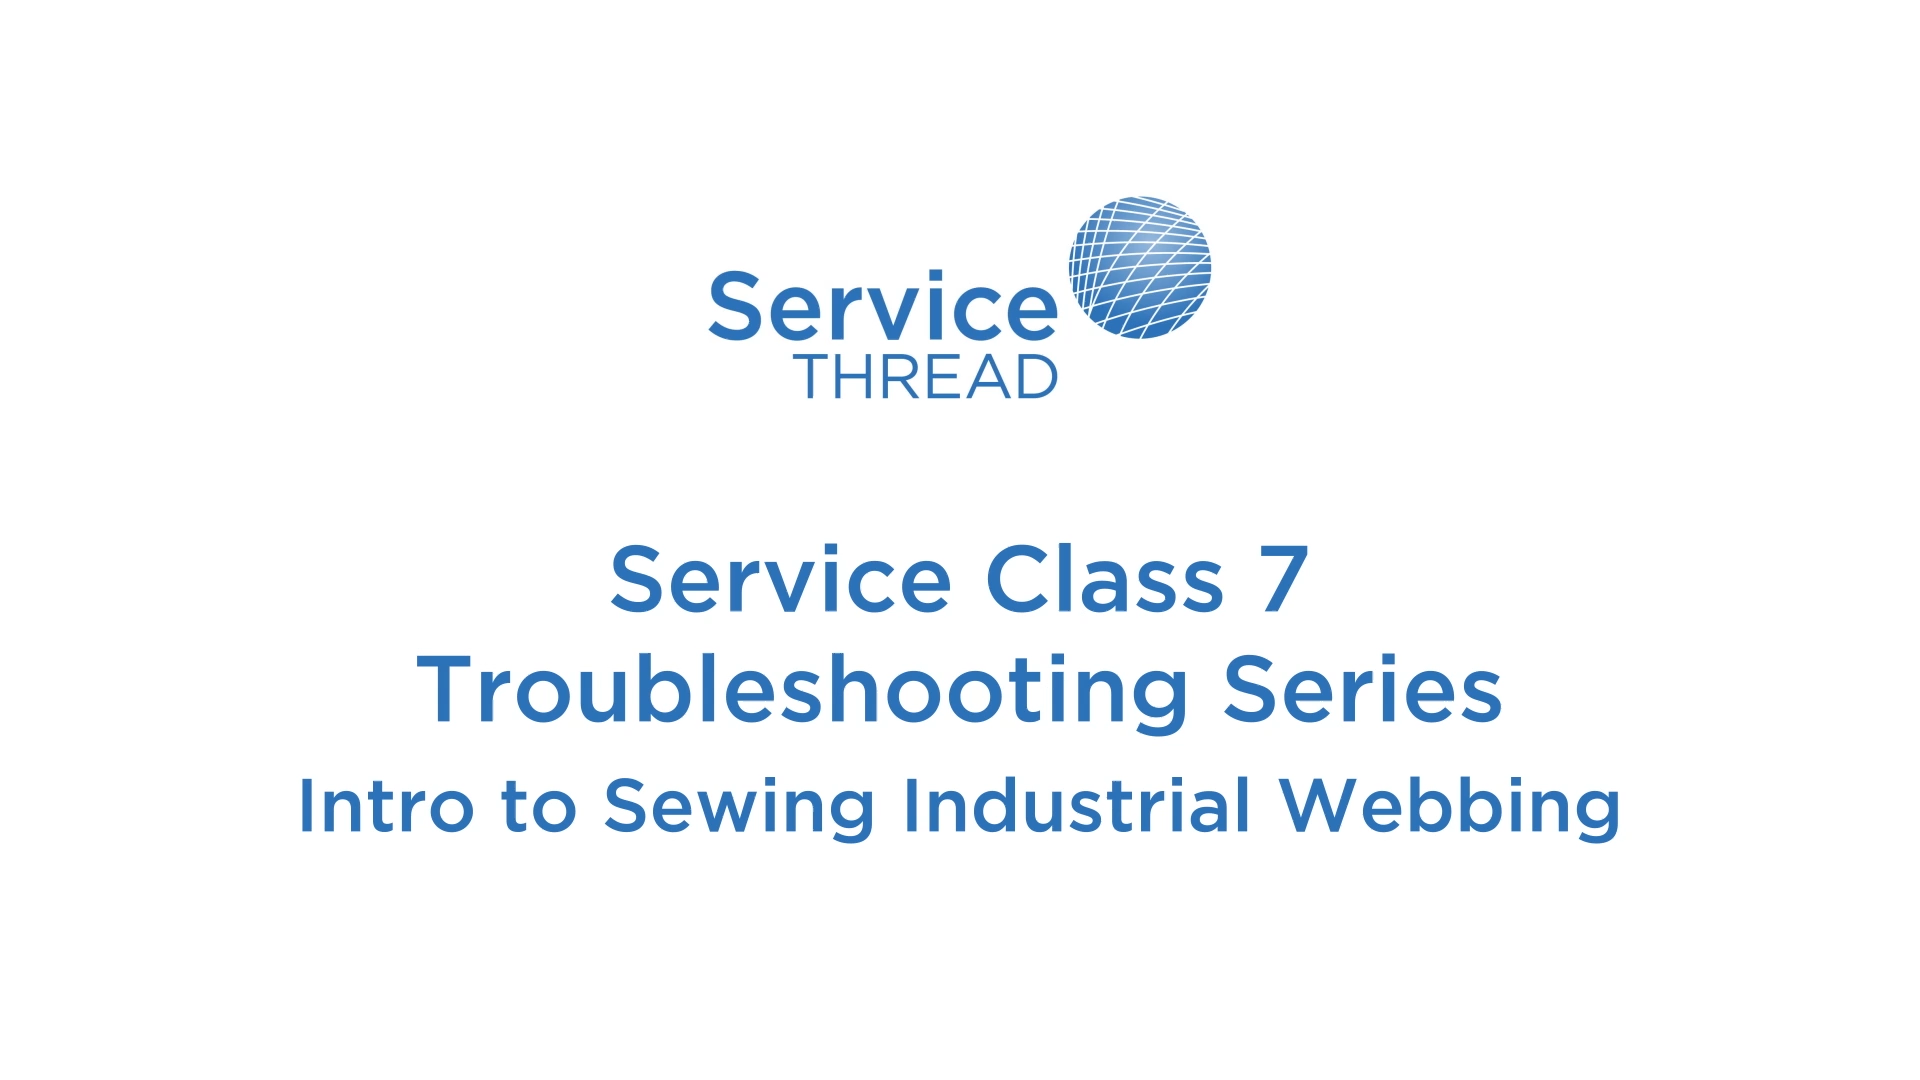 Intro to Sewing Industrial Webbing